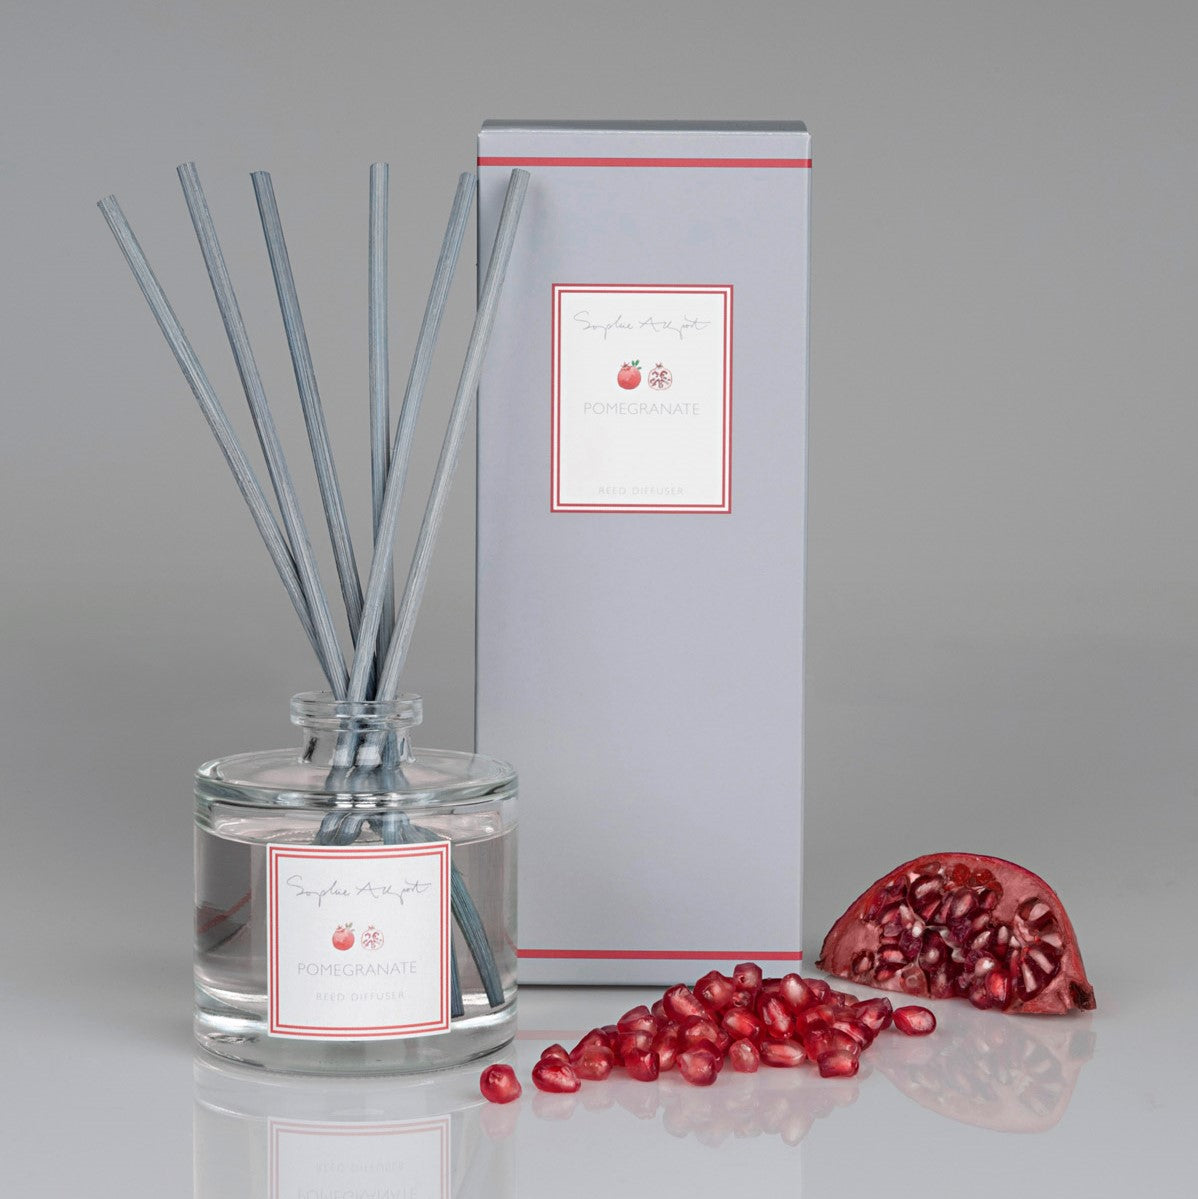 Pomegranate Scented Reed Diffuser